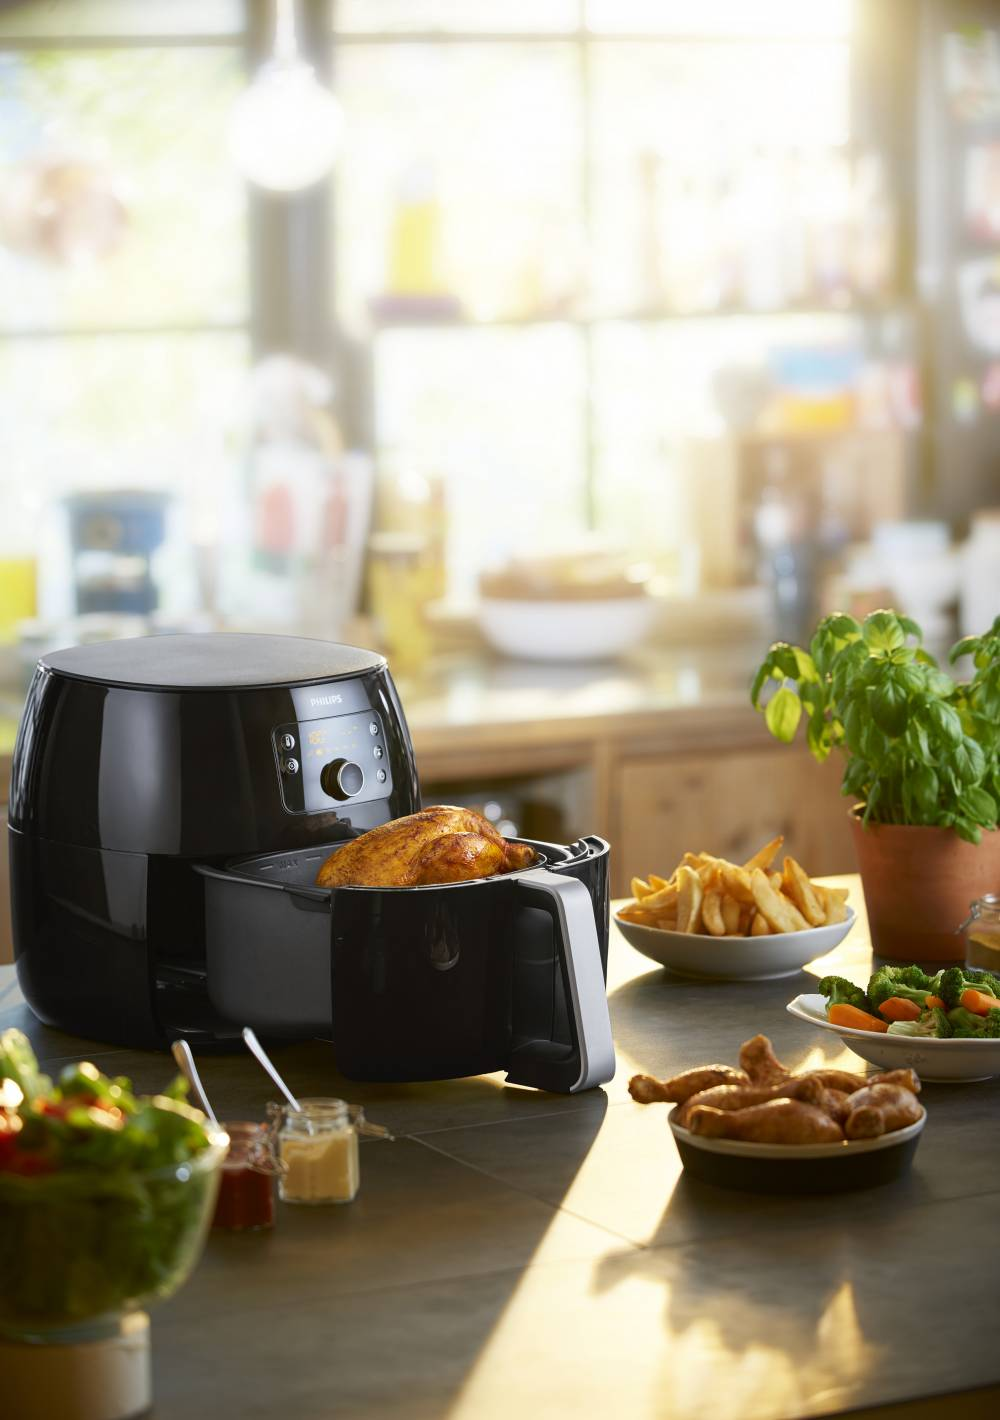 philips_airfryer_xxl_hd9652_90_ho_lifestyle3